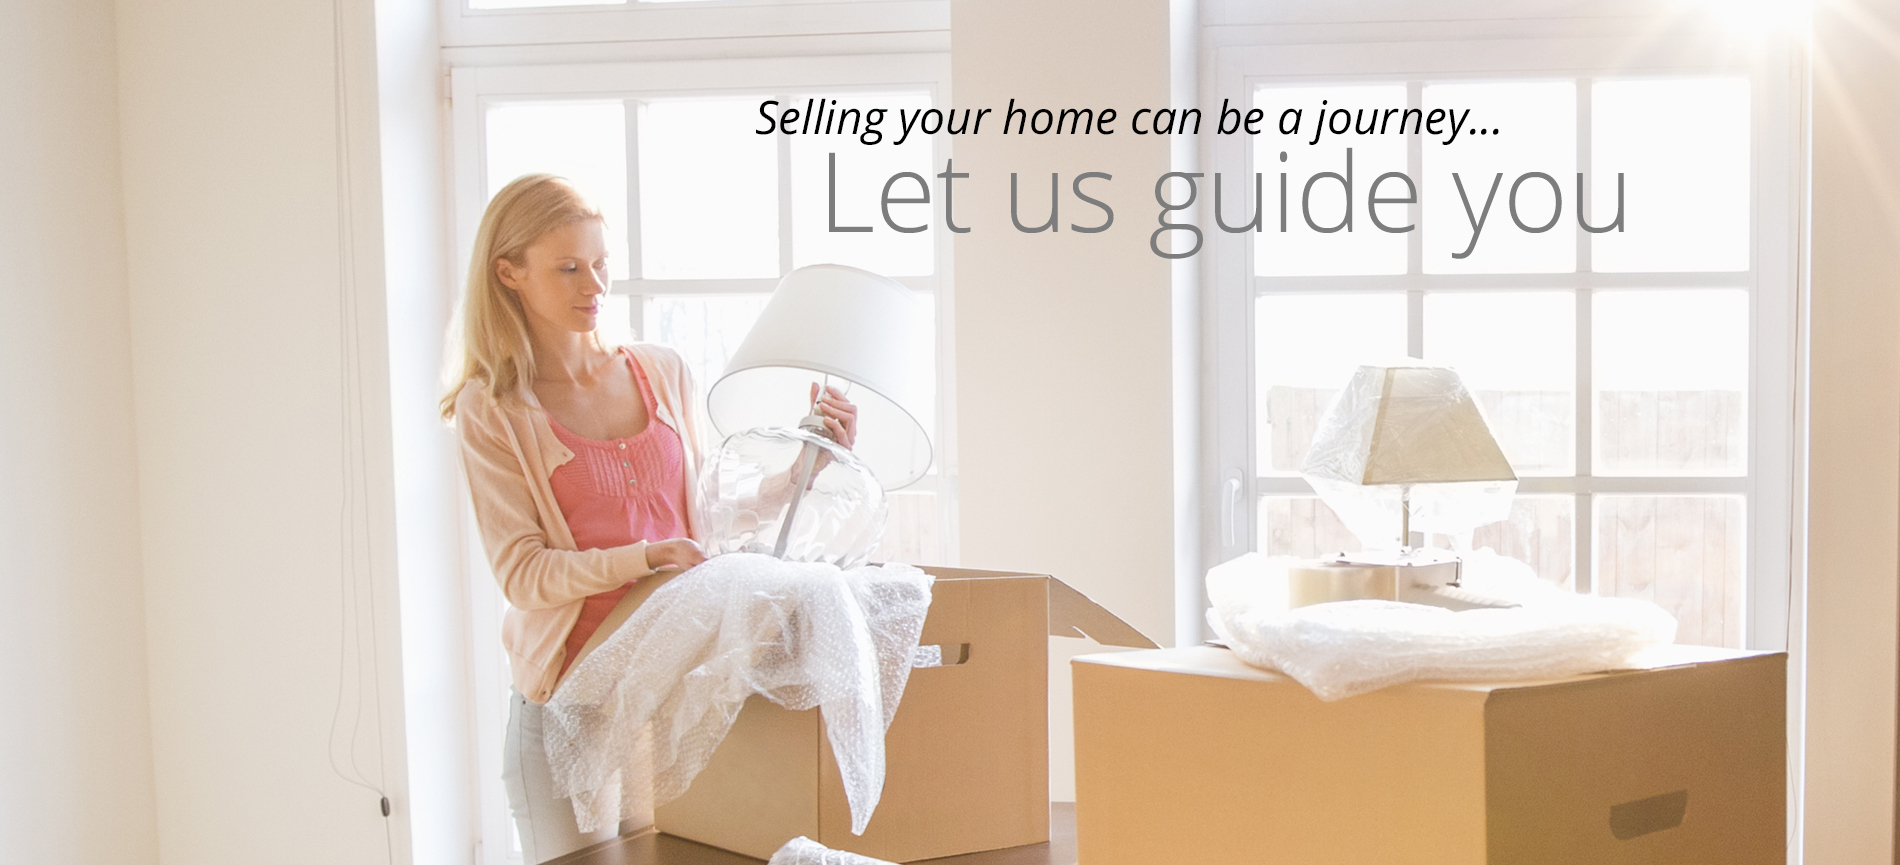 Selling your home can be a journey, let us guide you.